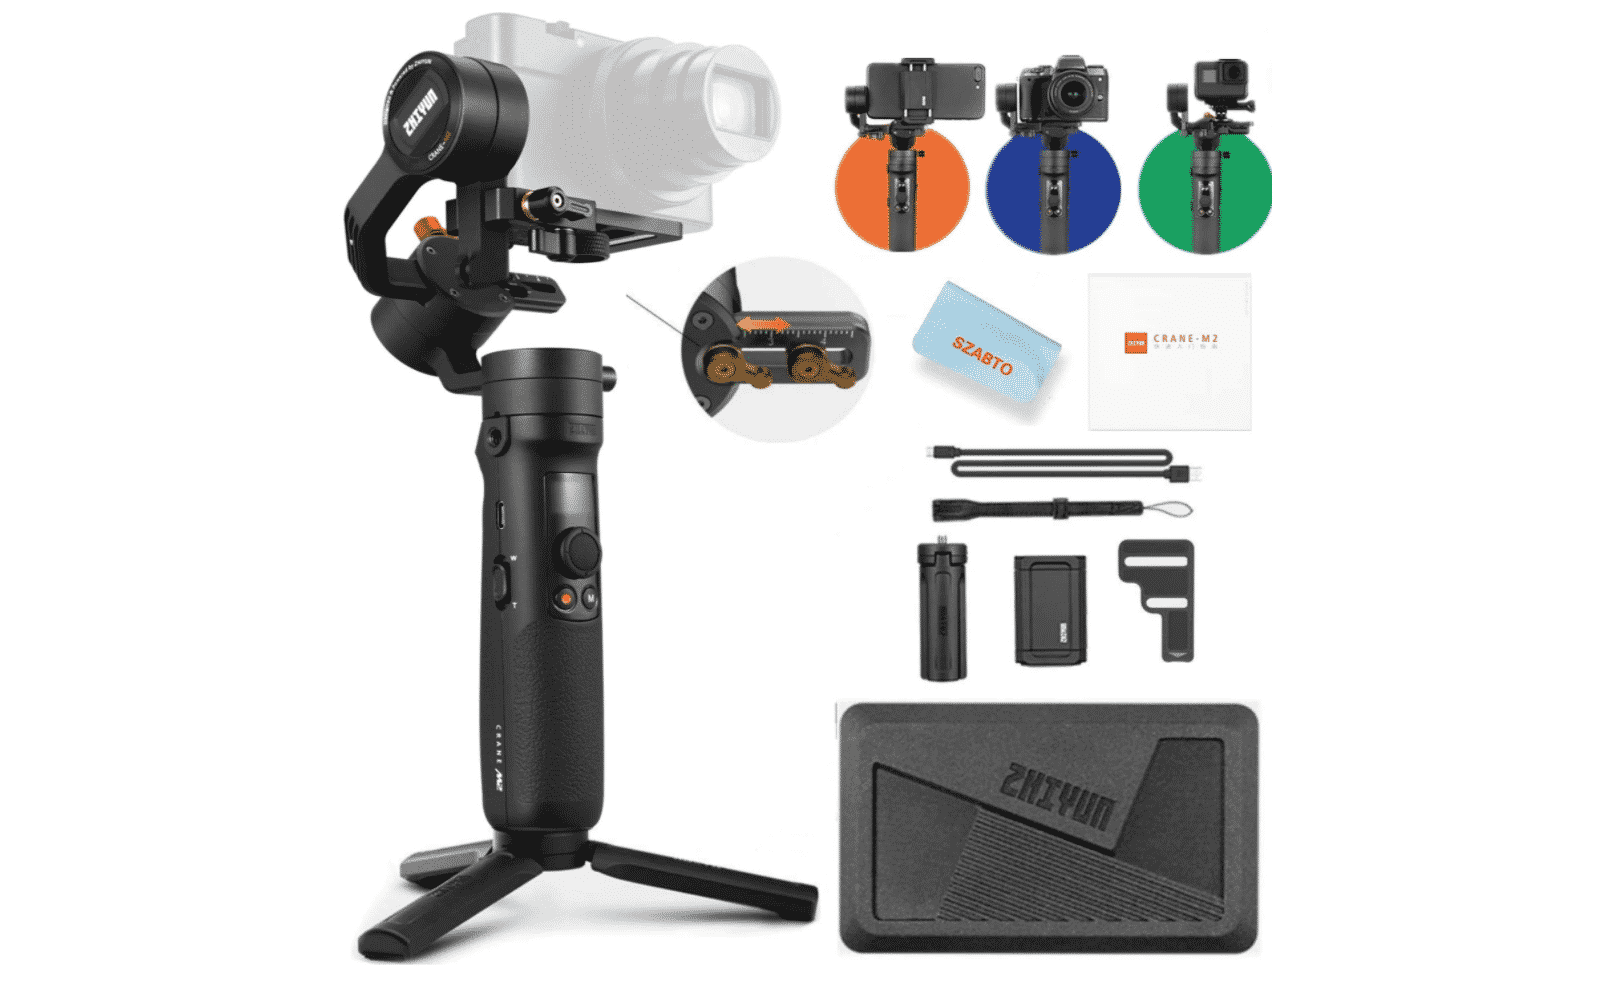 Capture Professional-Looking Shots and Videos with the Crane M2 3-Axis Gimbal Stabilizer